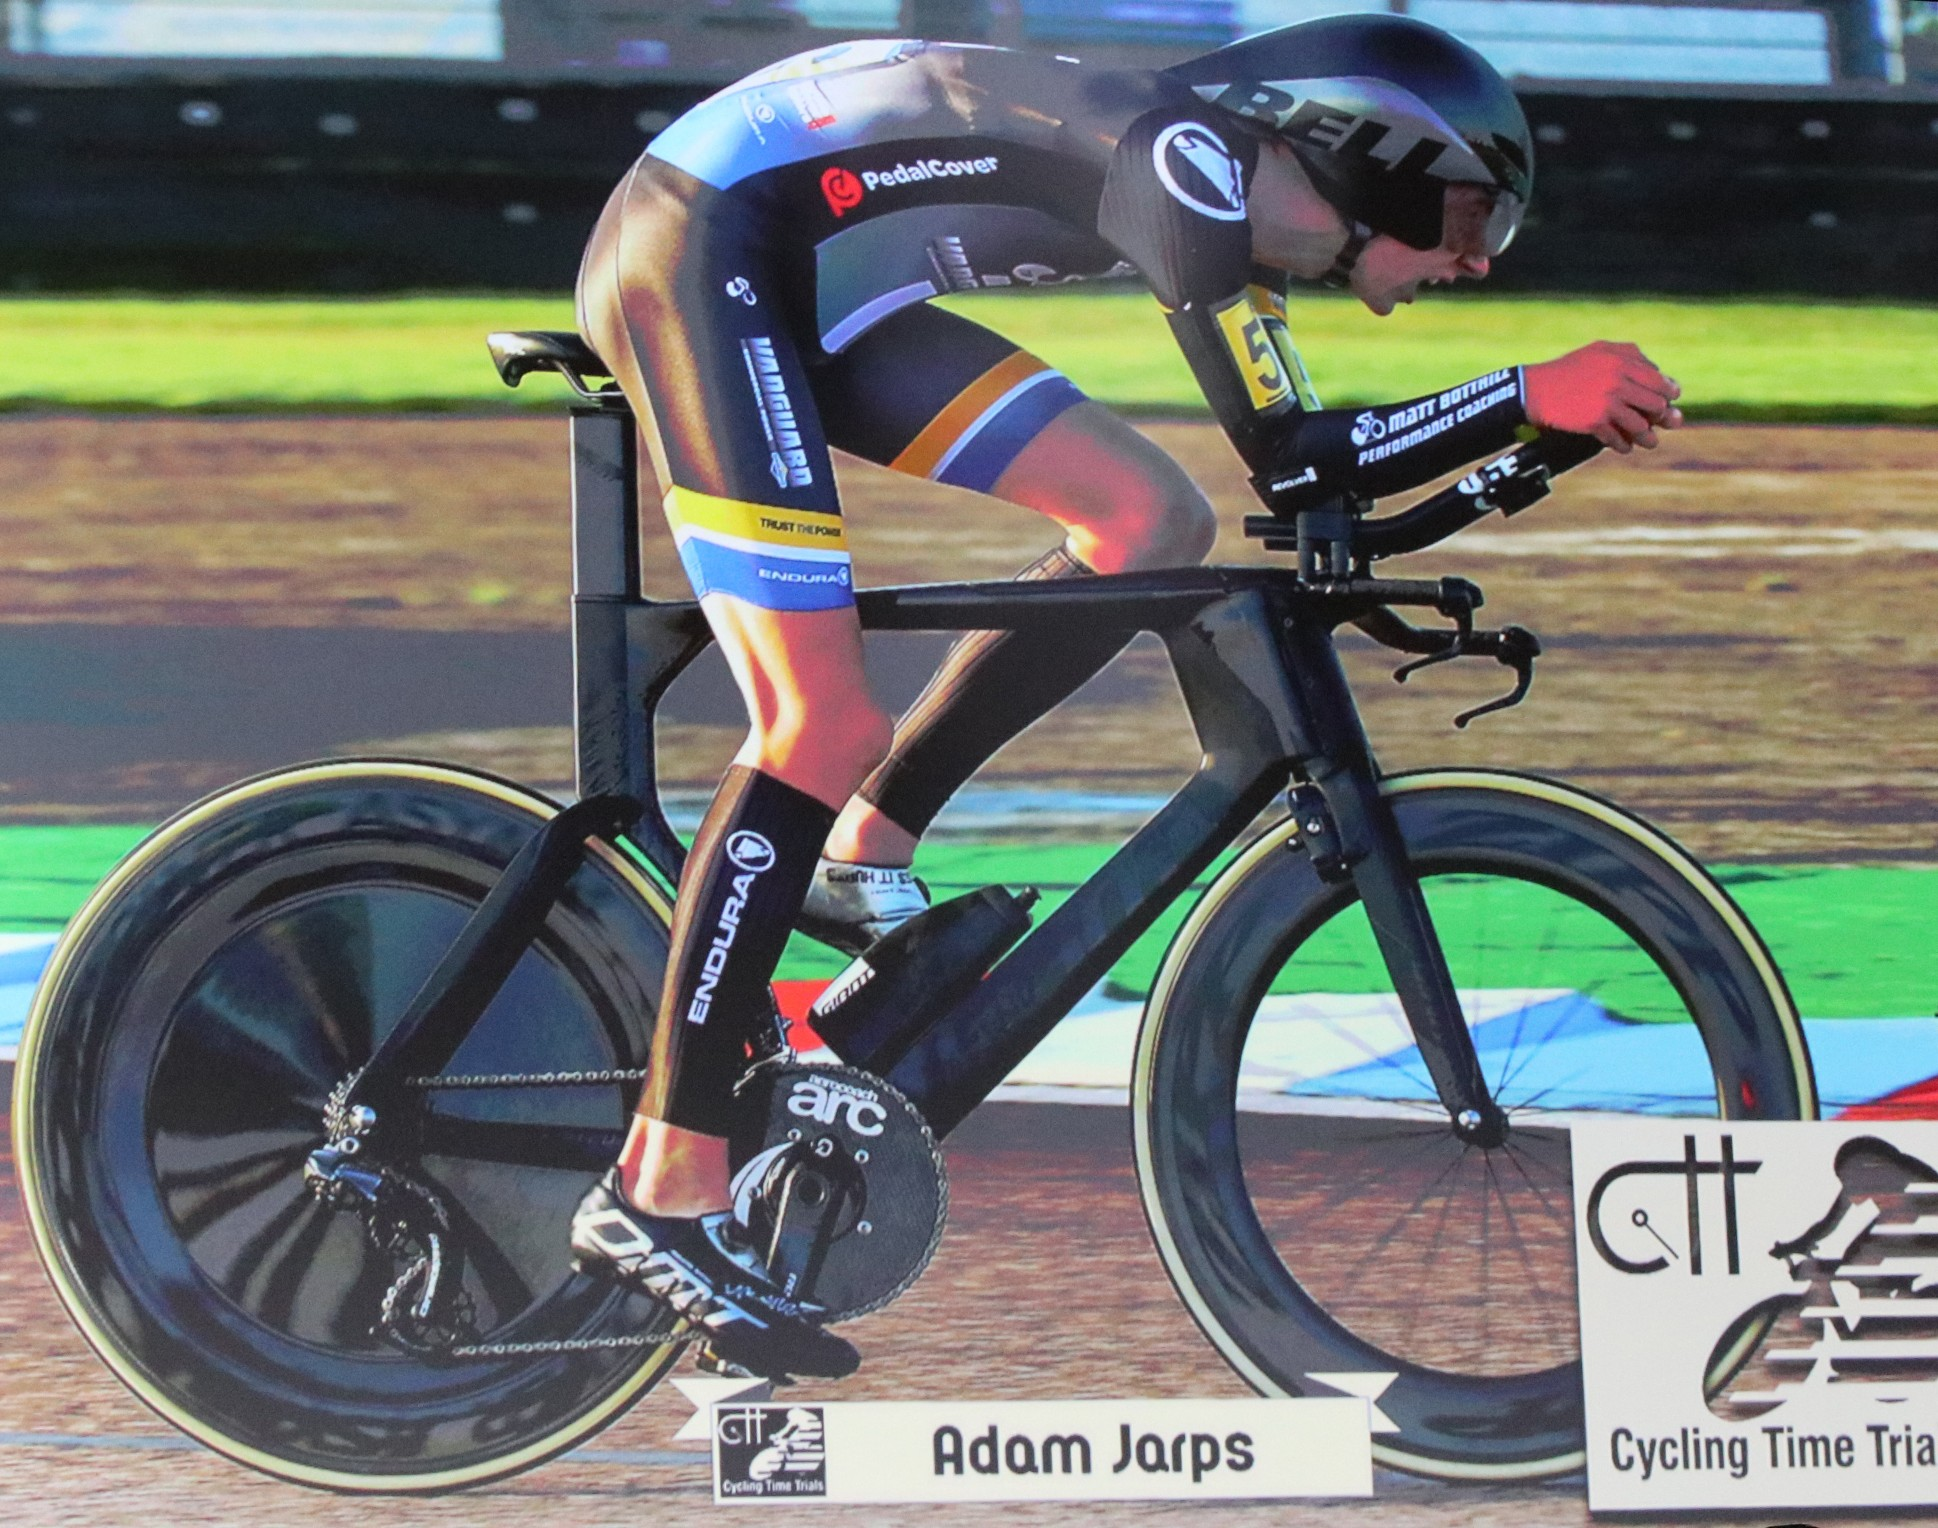 Newtonian Excelling in World of Cycling Time Trials